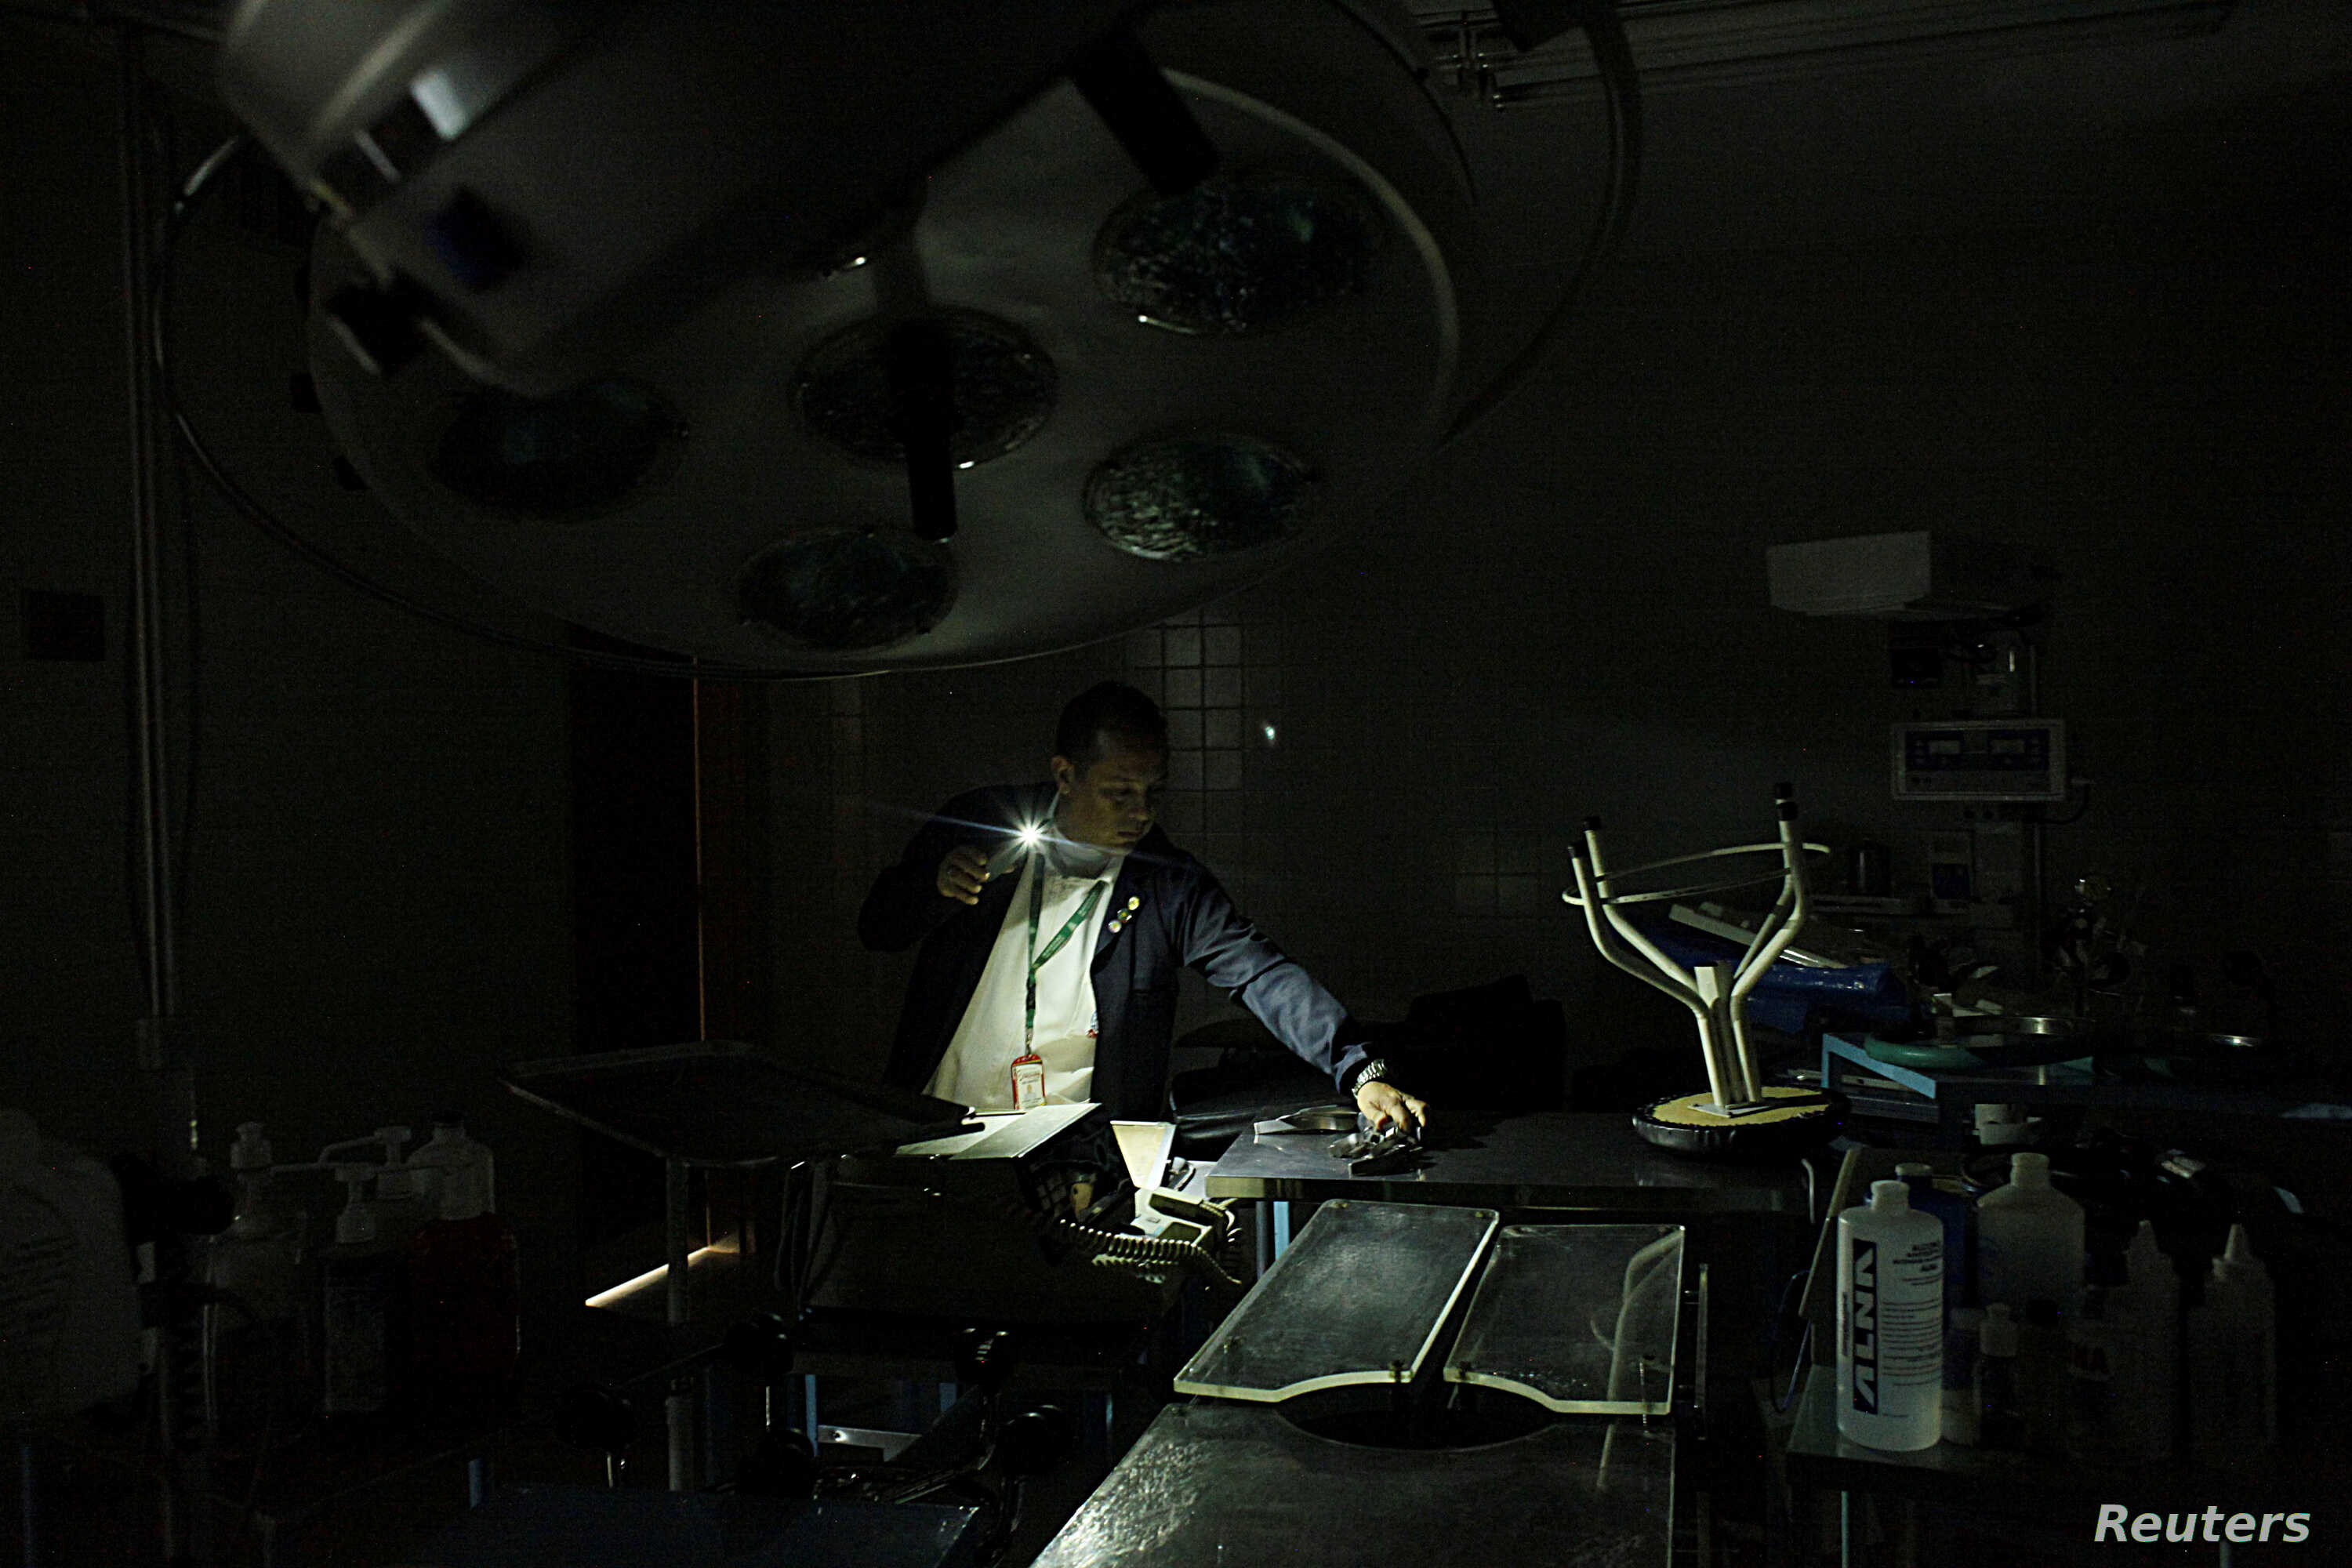 A nurse uses light from a phone while he looks for material in an out-of-use operating room of the Padre Justo hospital, during a blackout in Rubio, Venezuela, March 14, 2018.